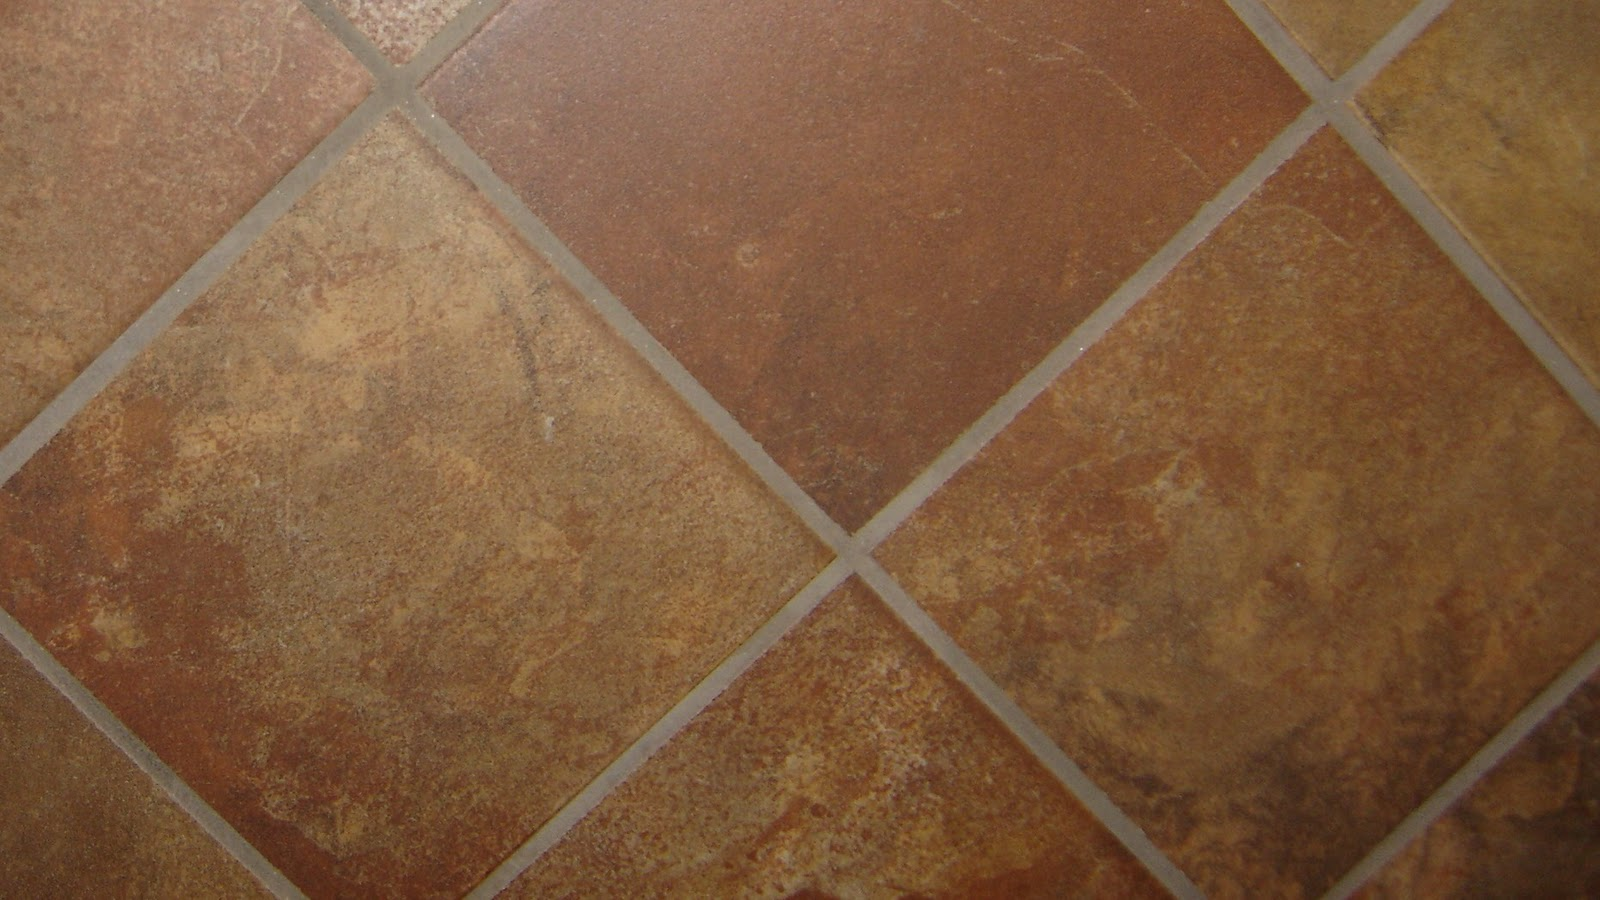 Ceiling Ceramic Install Tile: Software Free Download ...